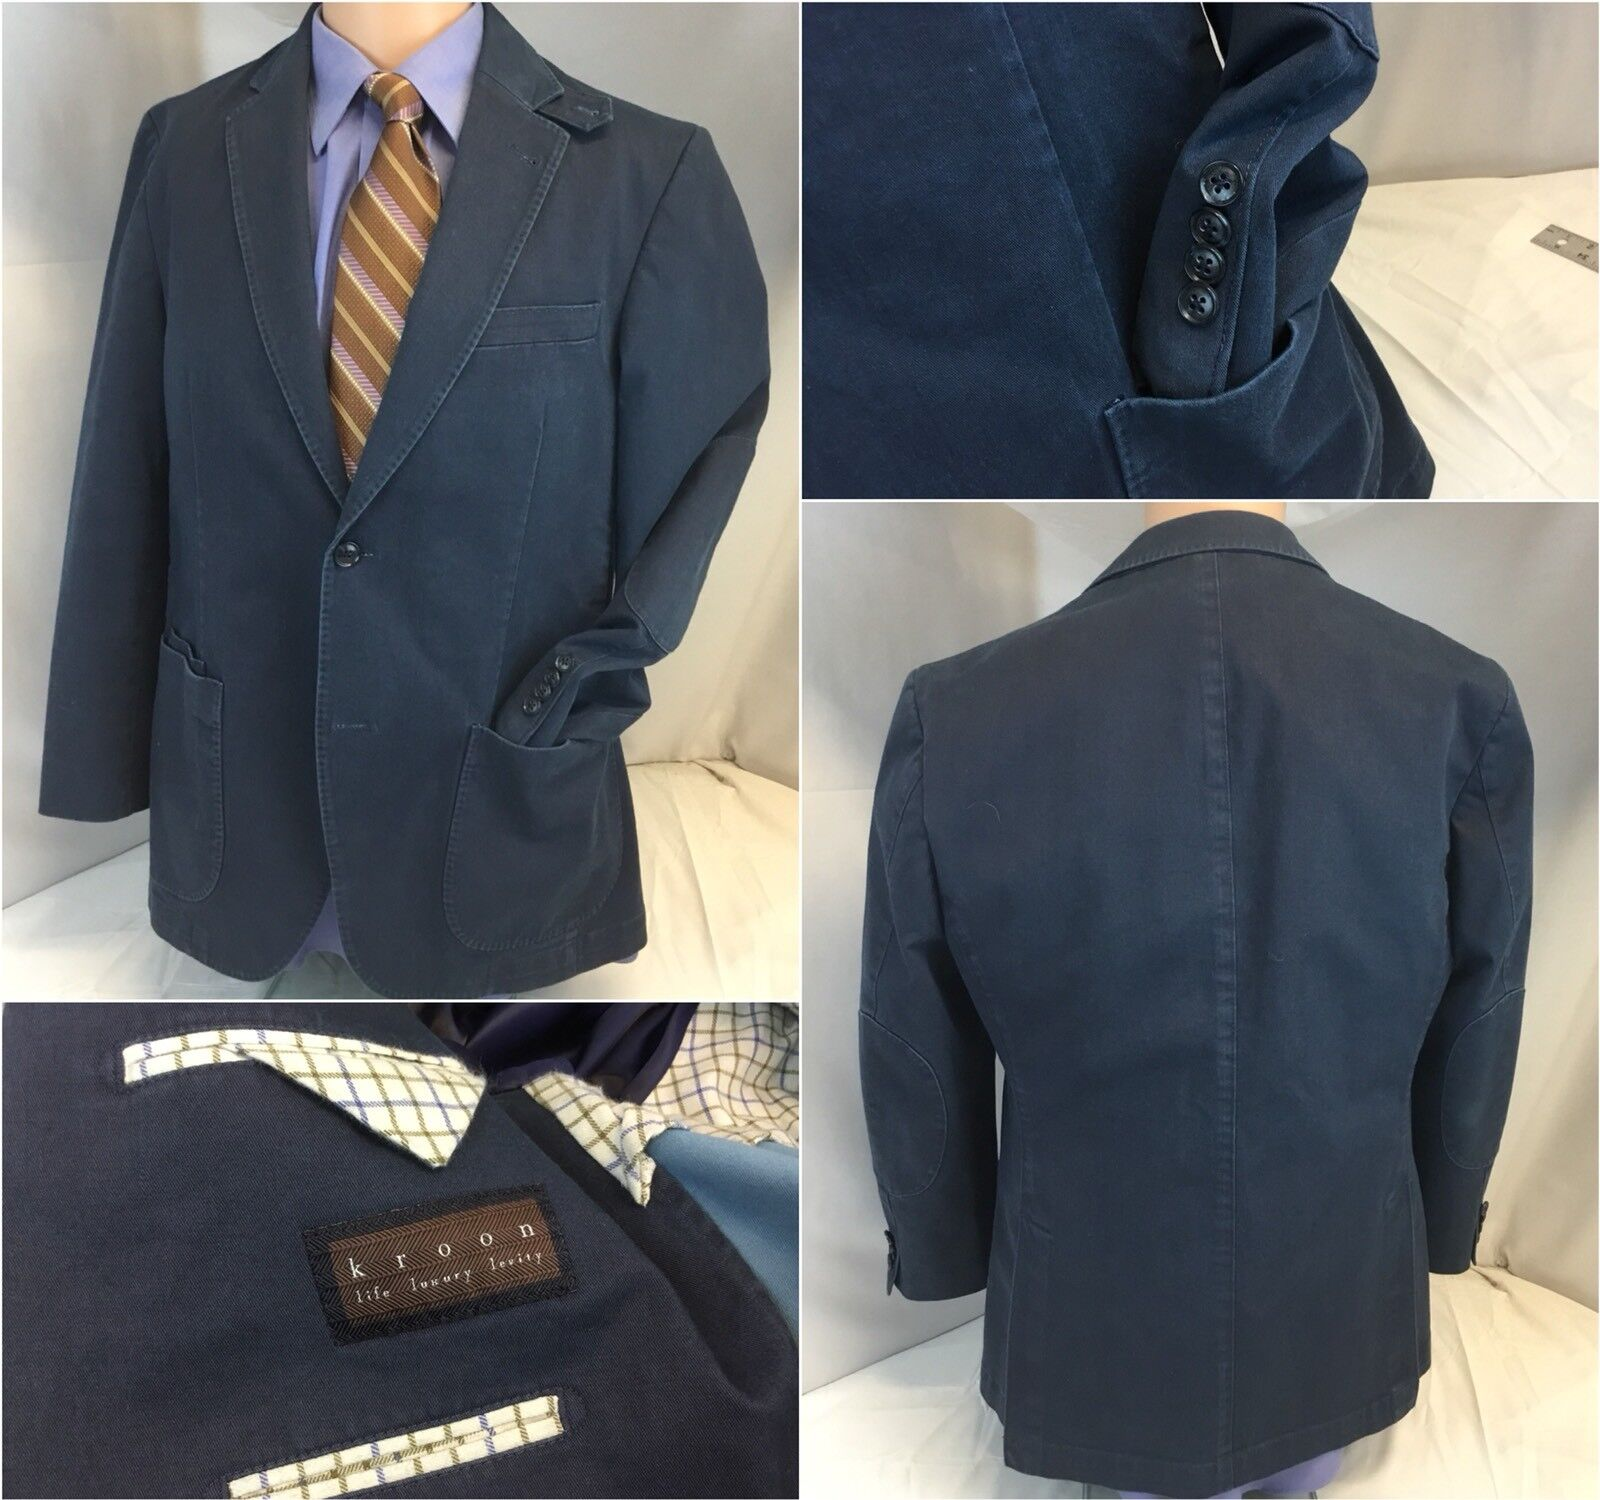 Kroon Blazer 38R Navy bluee 2b 2v Cotton Lycra 38 R Worn Once YGI D8-491